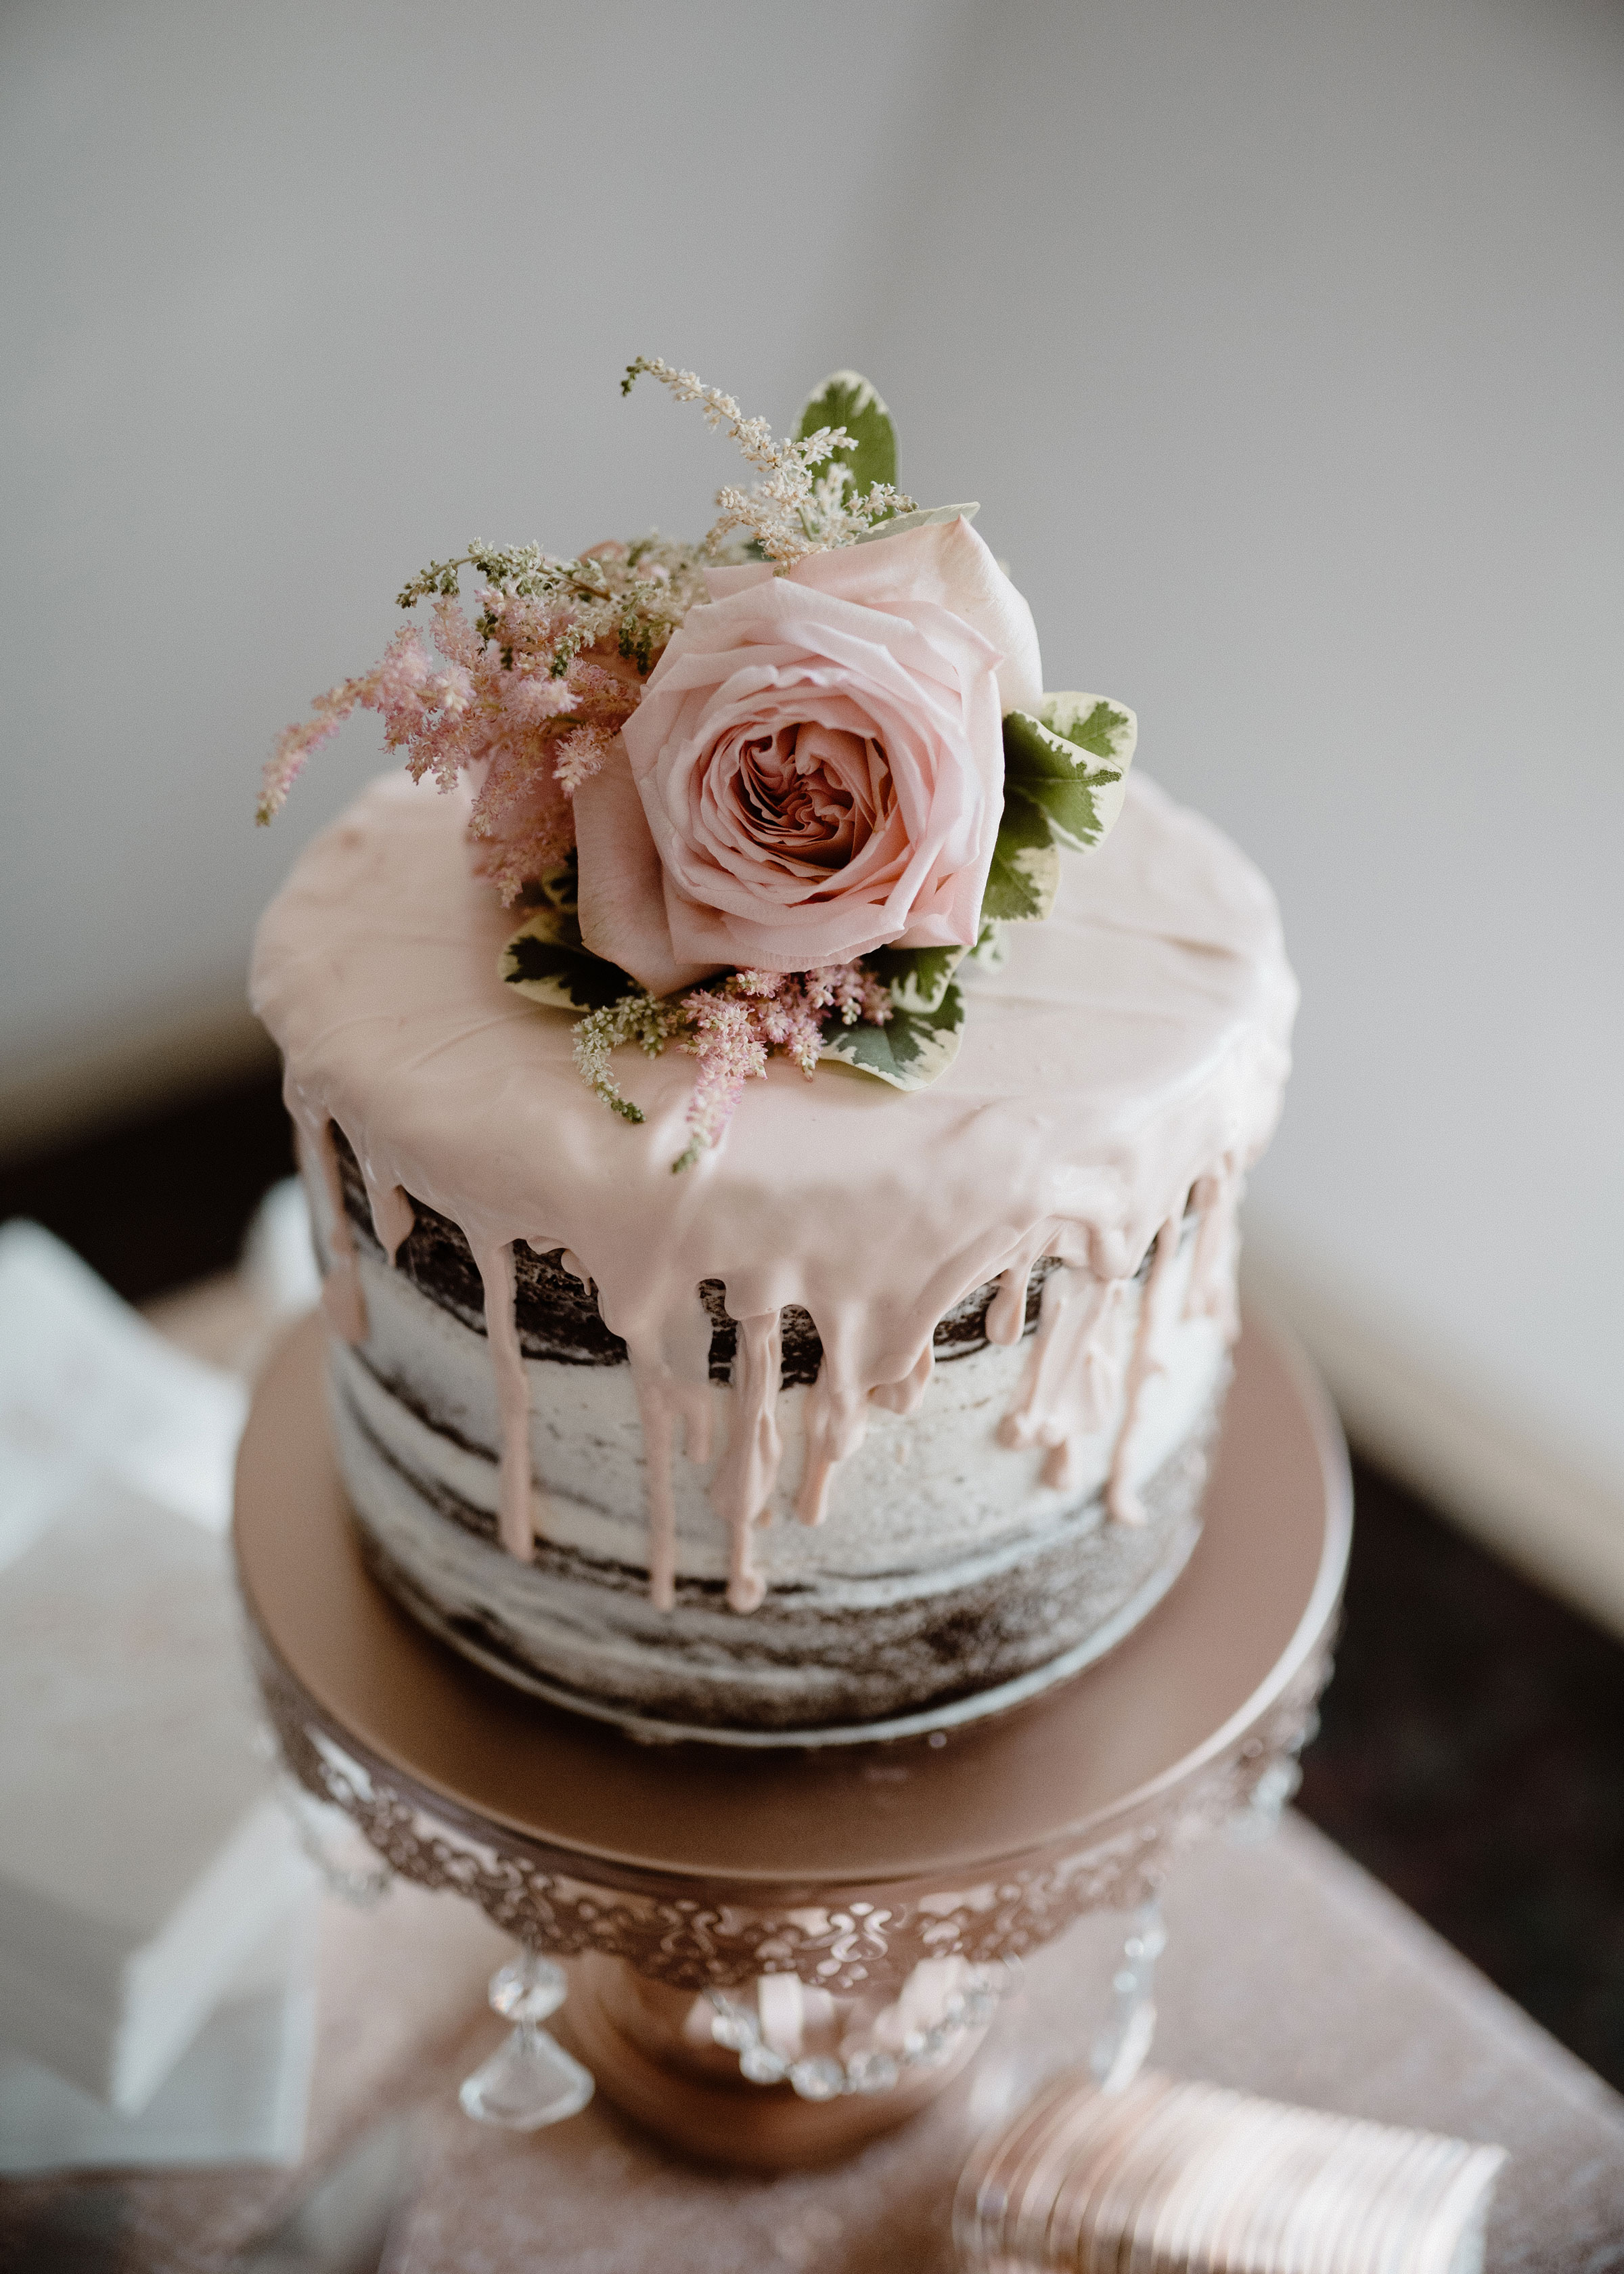 cake-with-roses-on-top-wedding-summerset-winery-indianola-iowa-raelyn-ramey-photography.jpg